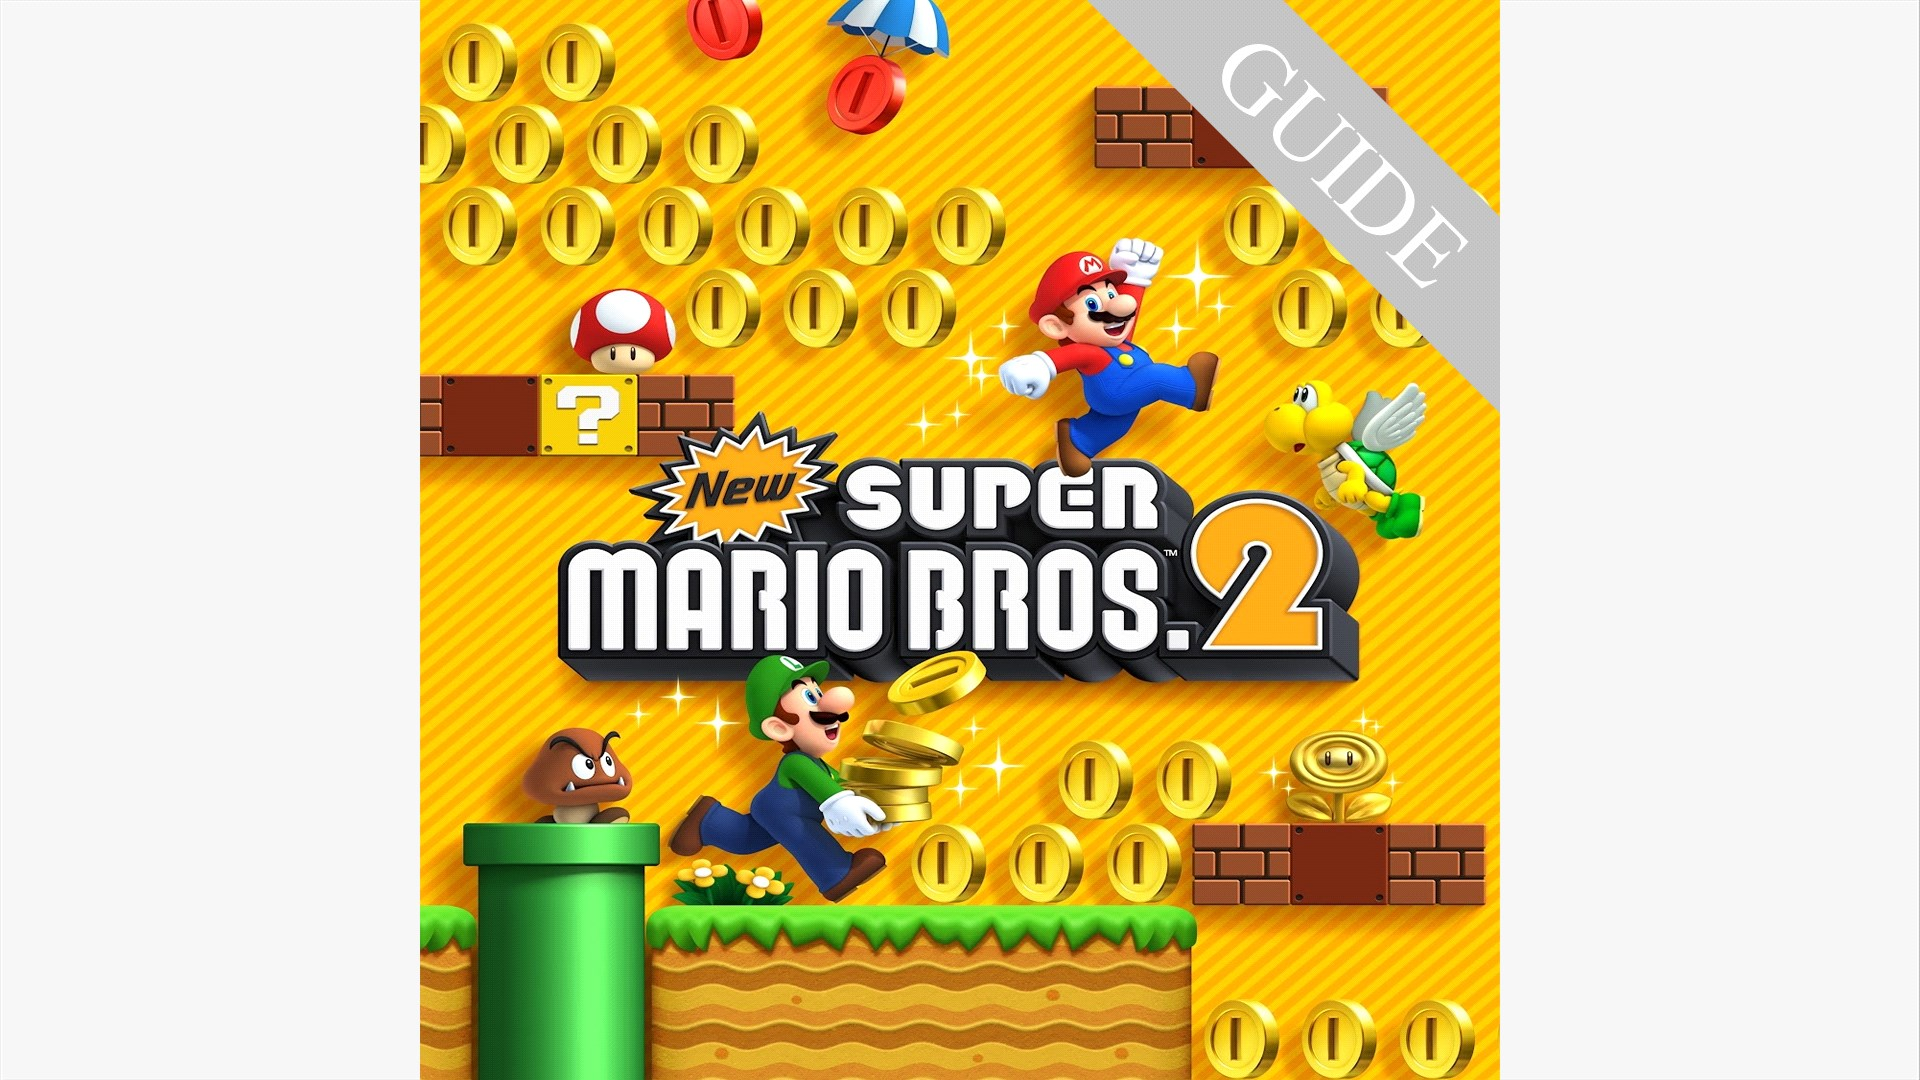 Buy New Super Mario Bros 2 Guide App Microsoft Store En Jm